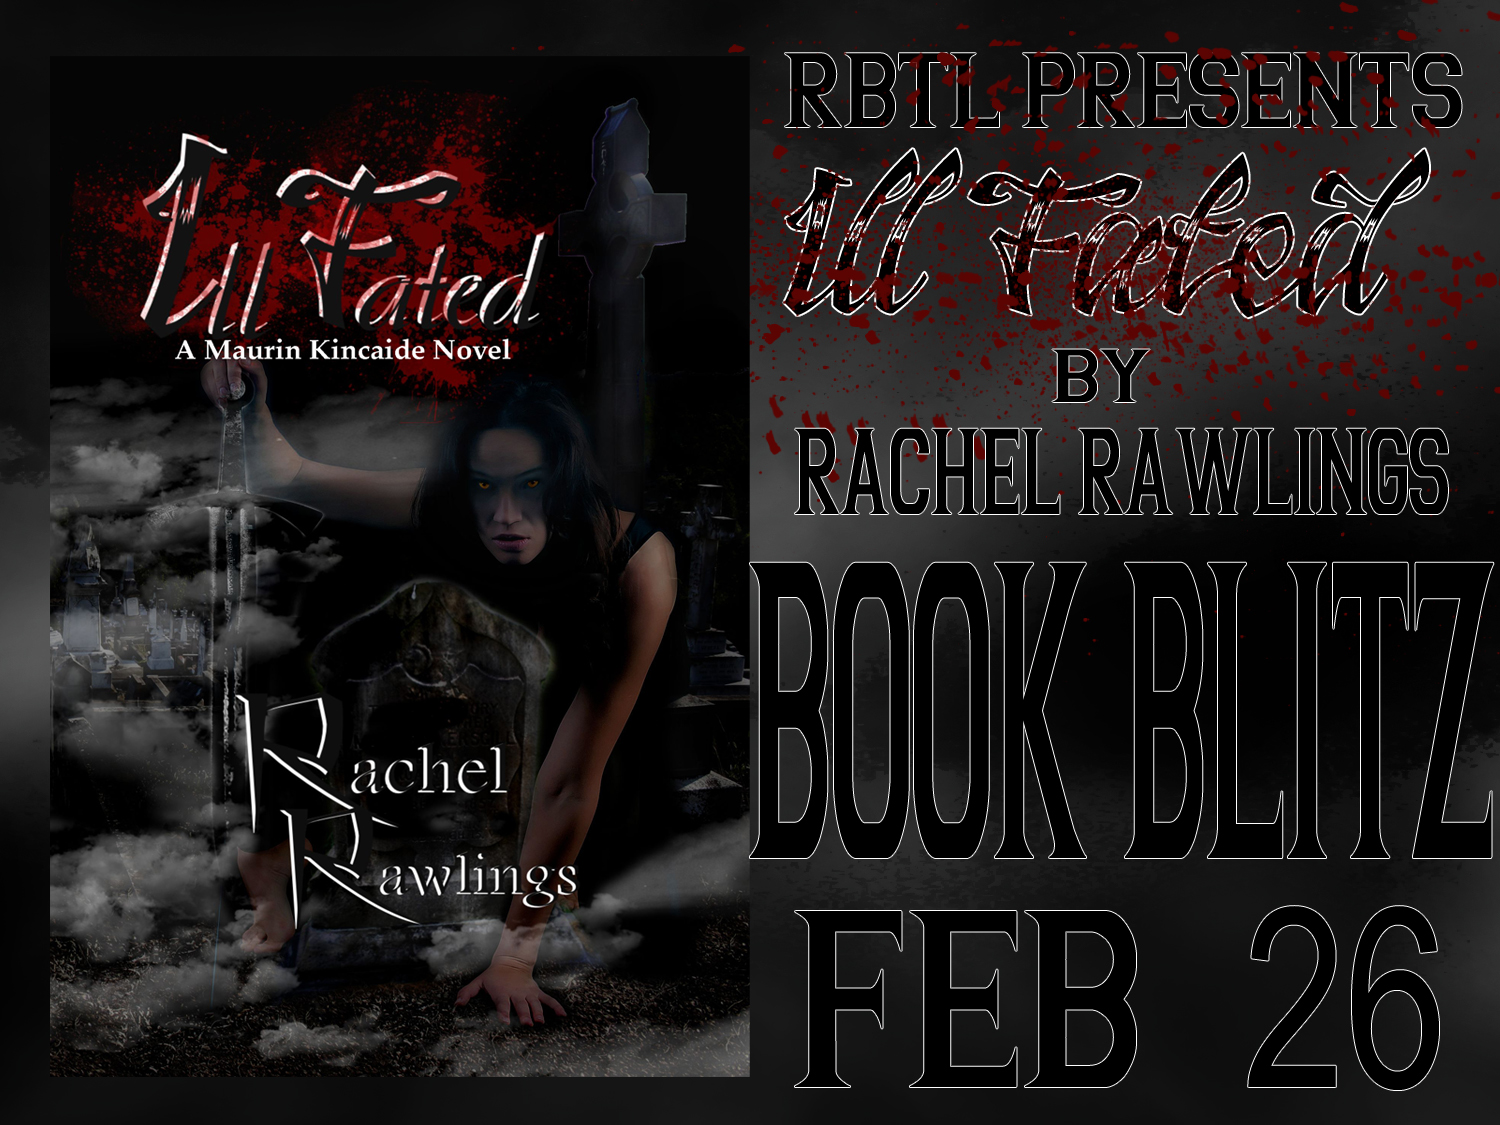 Ill Fated by Rachel Rawlings